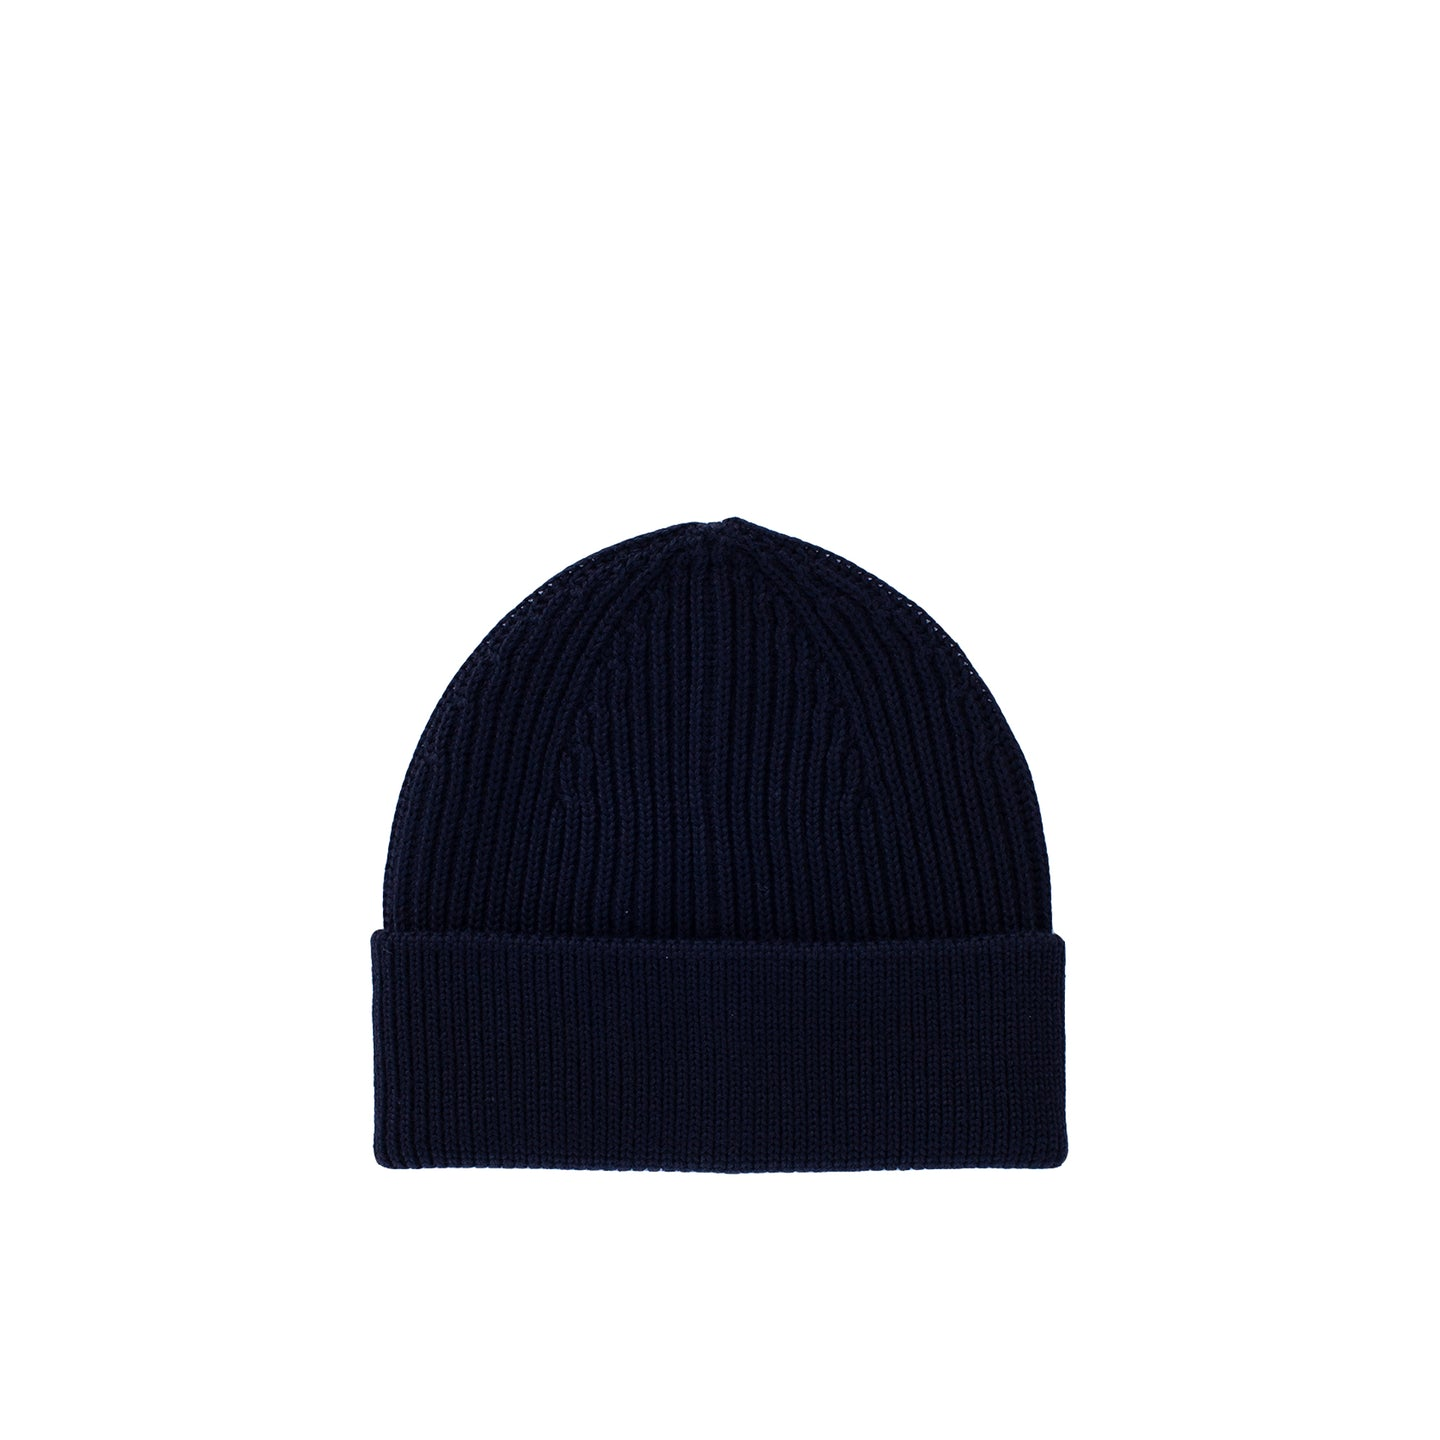 Long Beanie - Navy Blue